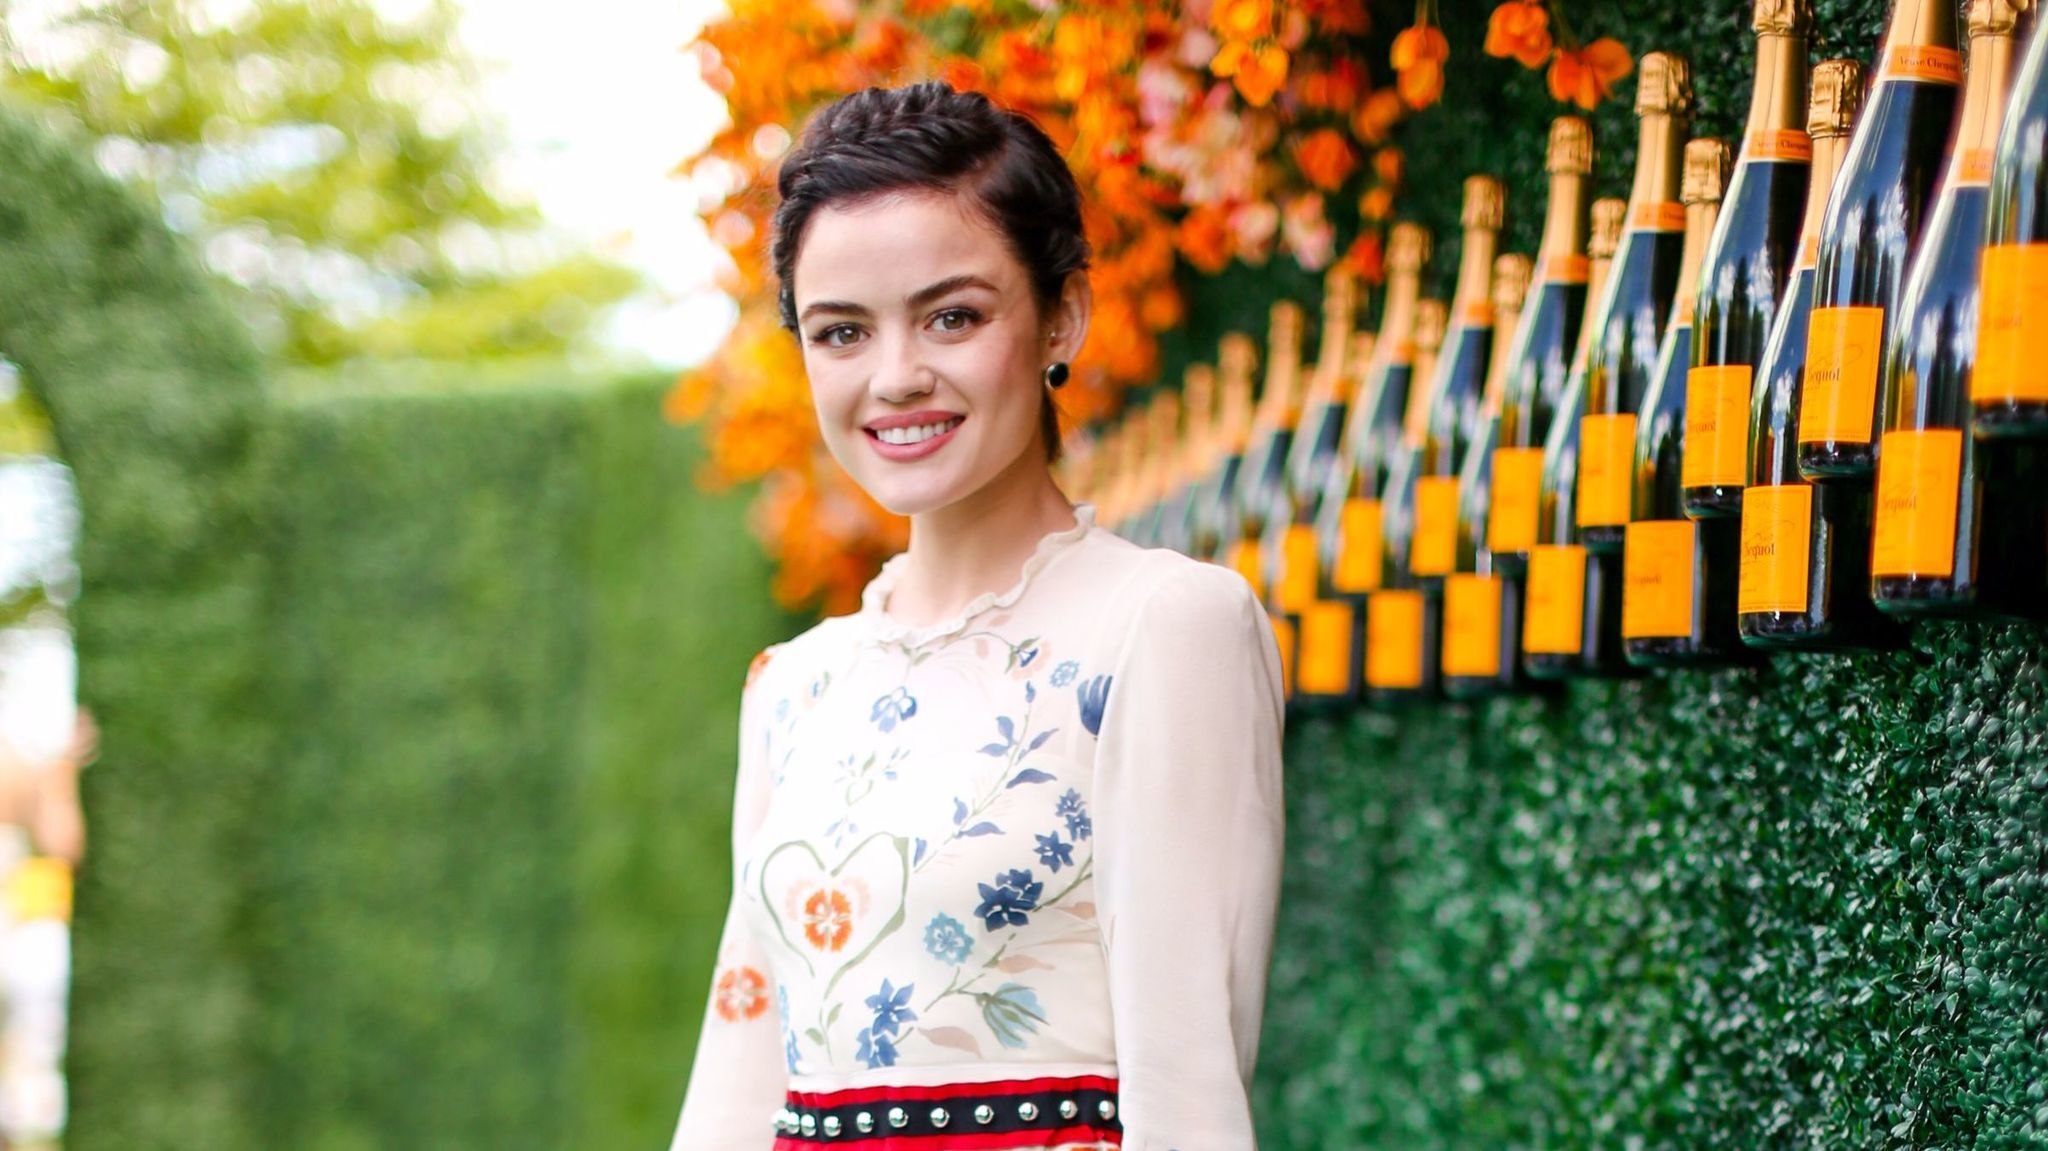 Lucy Hale attends the Veuve Cliquot Polo Classic in Jersey City, N.J., on June 3, 2017.